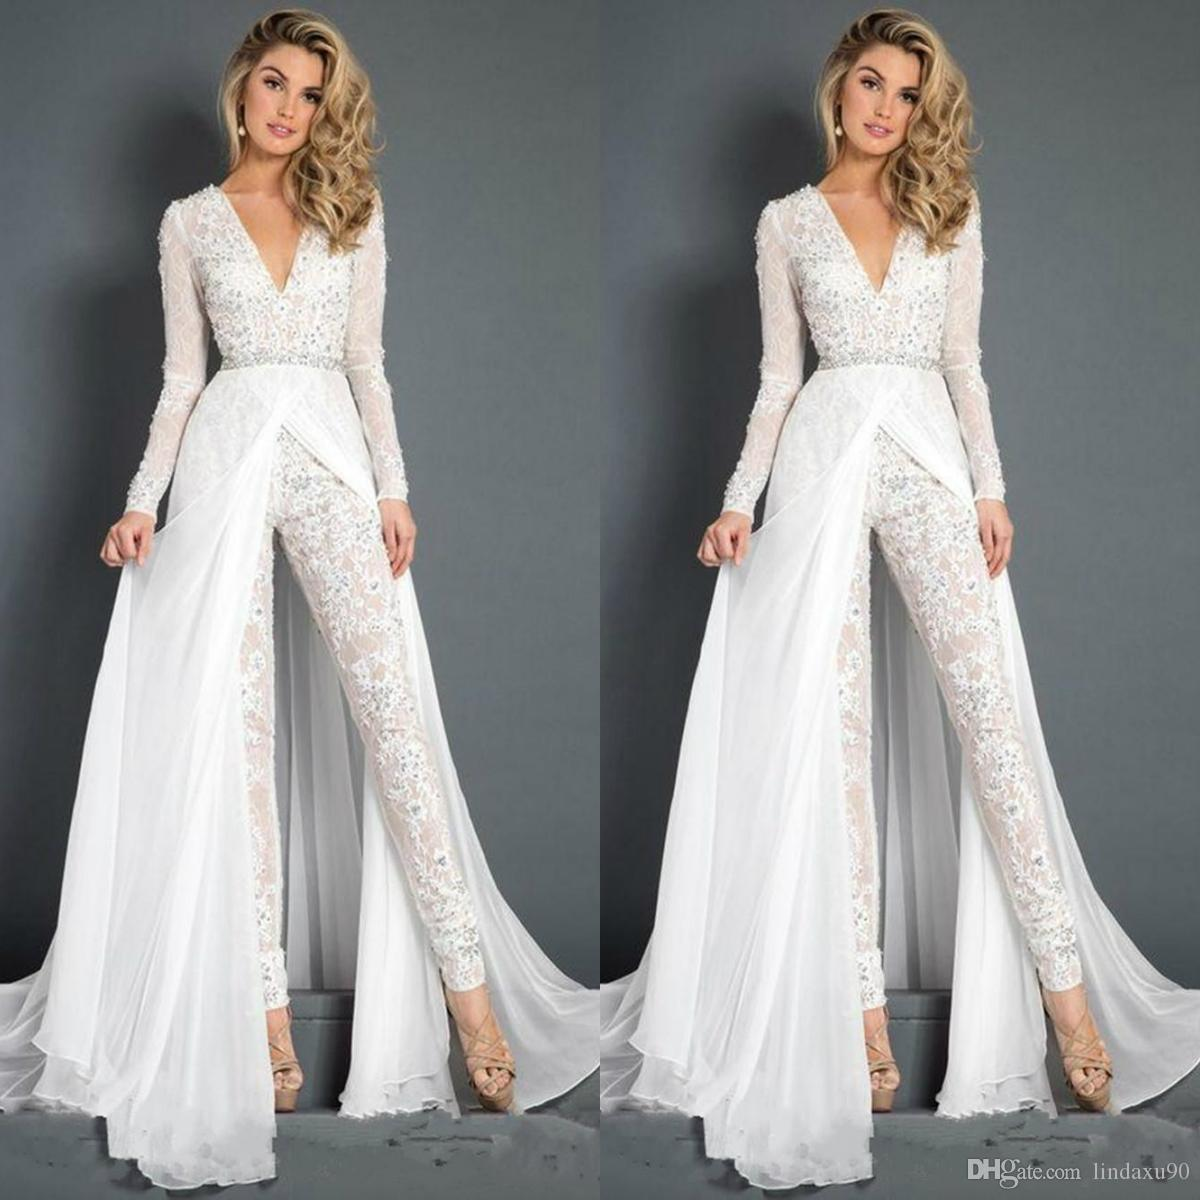 9fb846dd993 White Jumpsuits Prom Dresses Beaded Lace Deep V Neck Overskirts Formal  Evening Party Gowns Cheap Long Sleeve Beach Special Occasion Pants Camo Prom  Dress ...